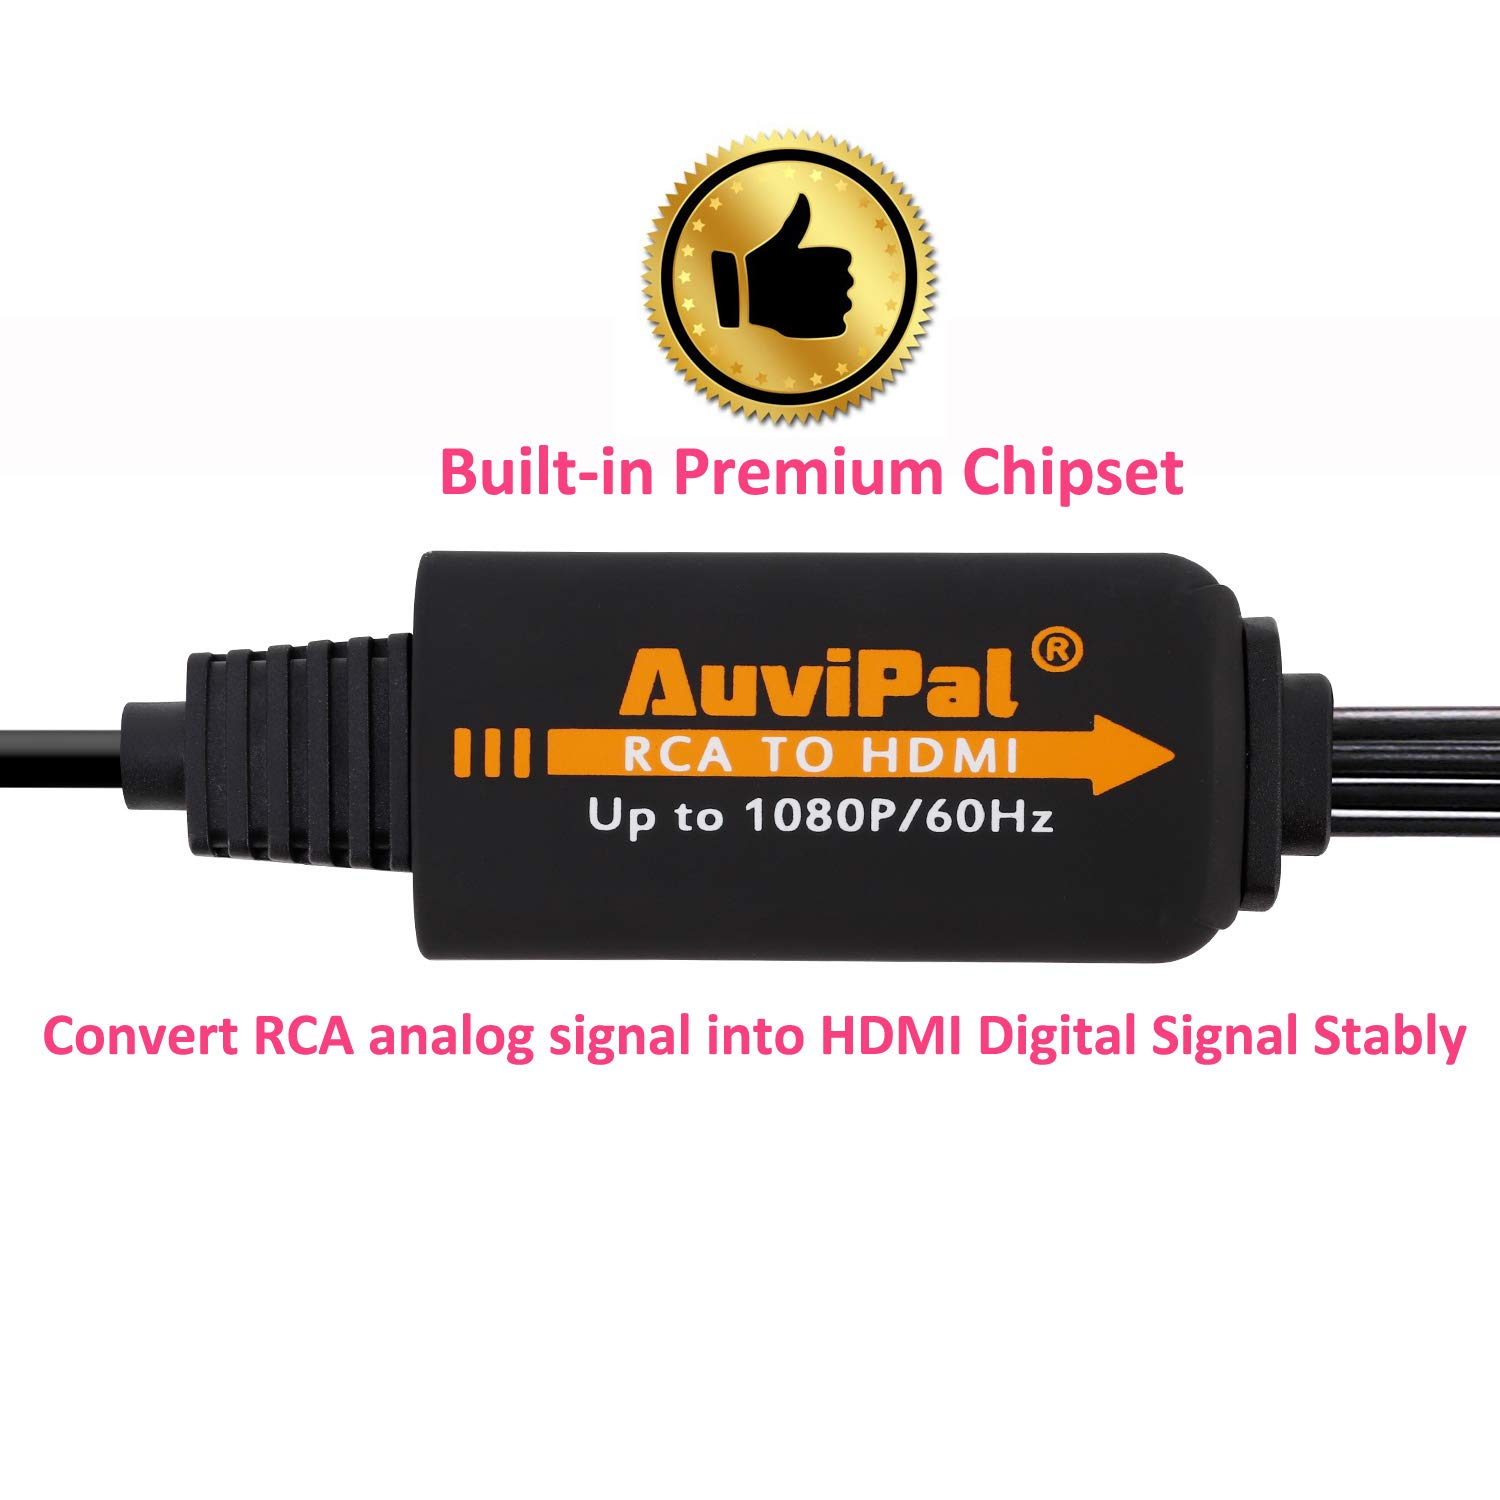 1080P RCA to HDMI Converter Cable, AuviPal AV to HDMI Adapter for Playing VHS/VCR/DVD Player/Game Consoles etc on Modern TV. All-in-One 3RCA Composite AV to HDMI Video Converter by AuviPal (Image #3)